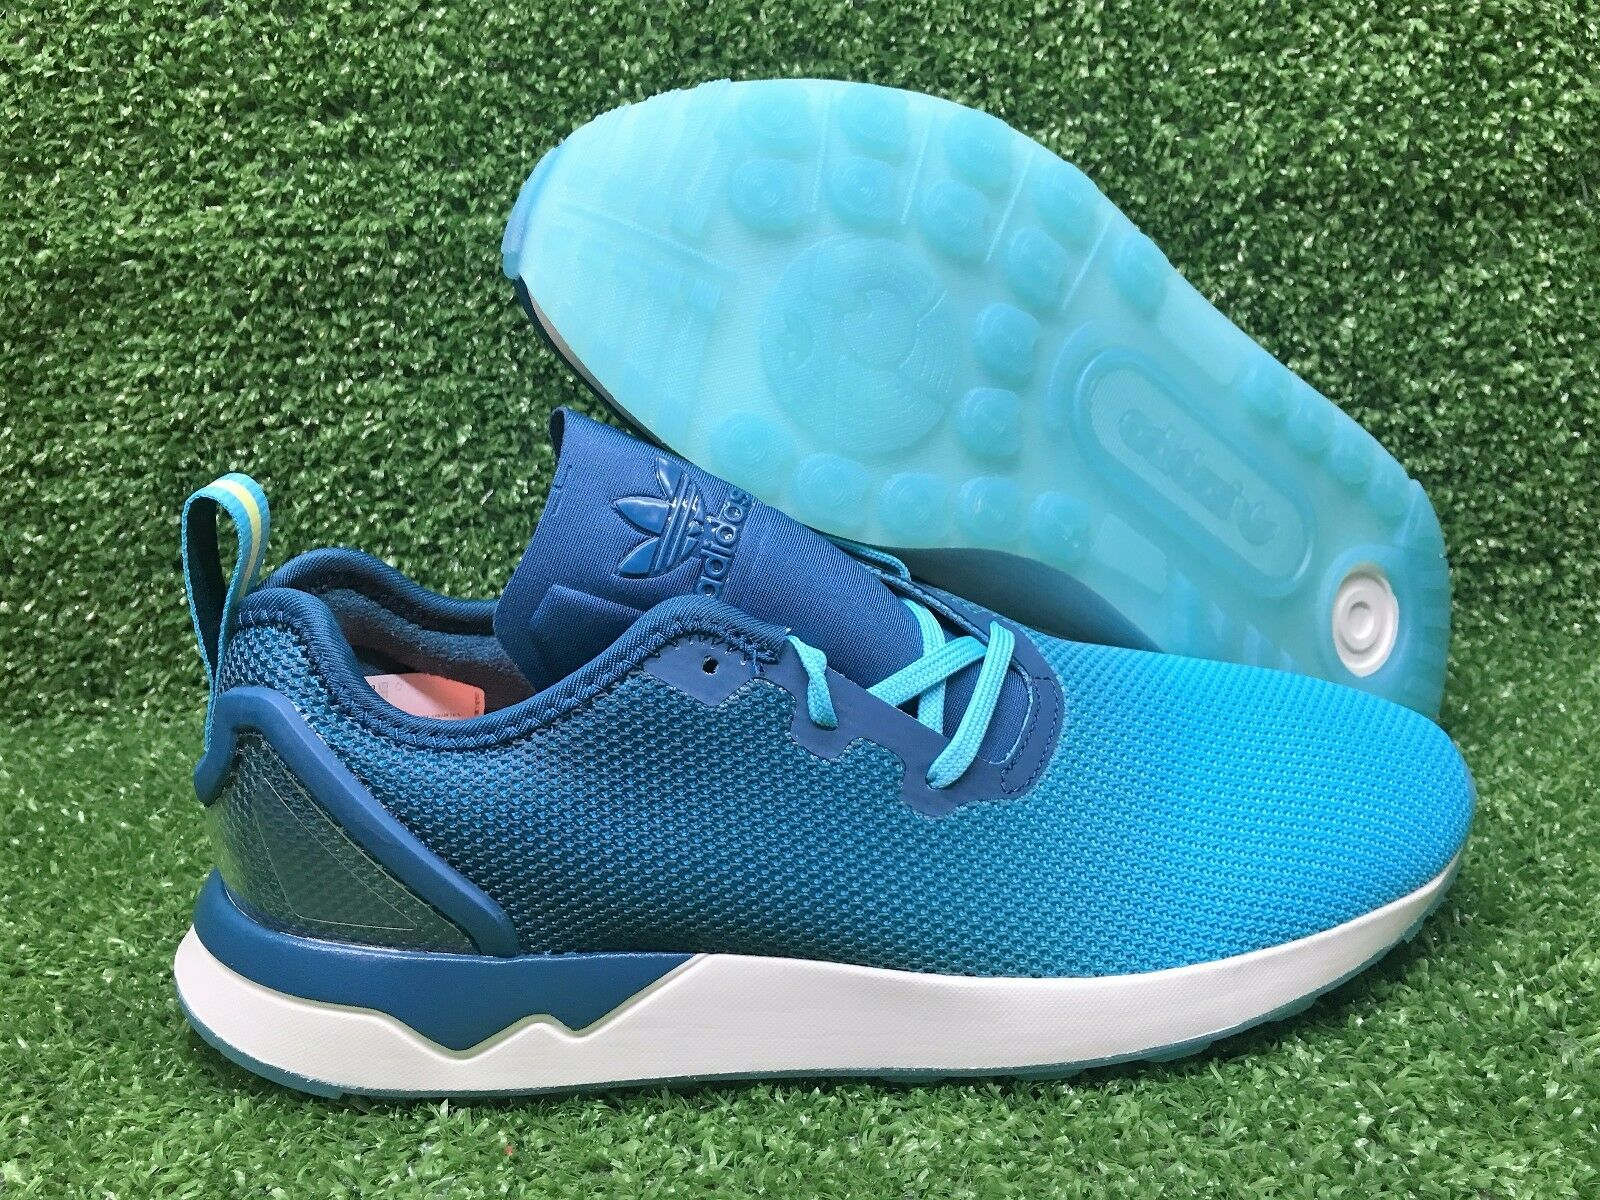 NEW ADIDAS ORIGINAL ZX FLUX ADV ASYMMETRICAL MENS SHOE BLUE GLOW/MINERAL S79056